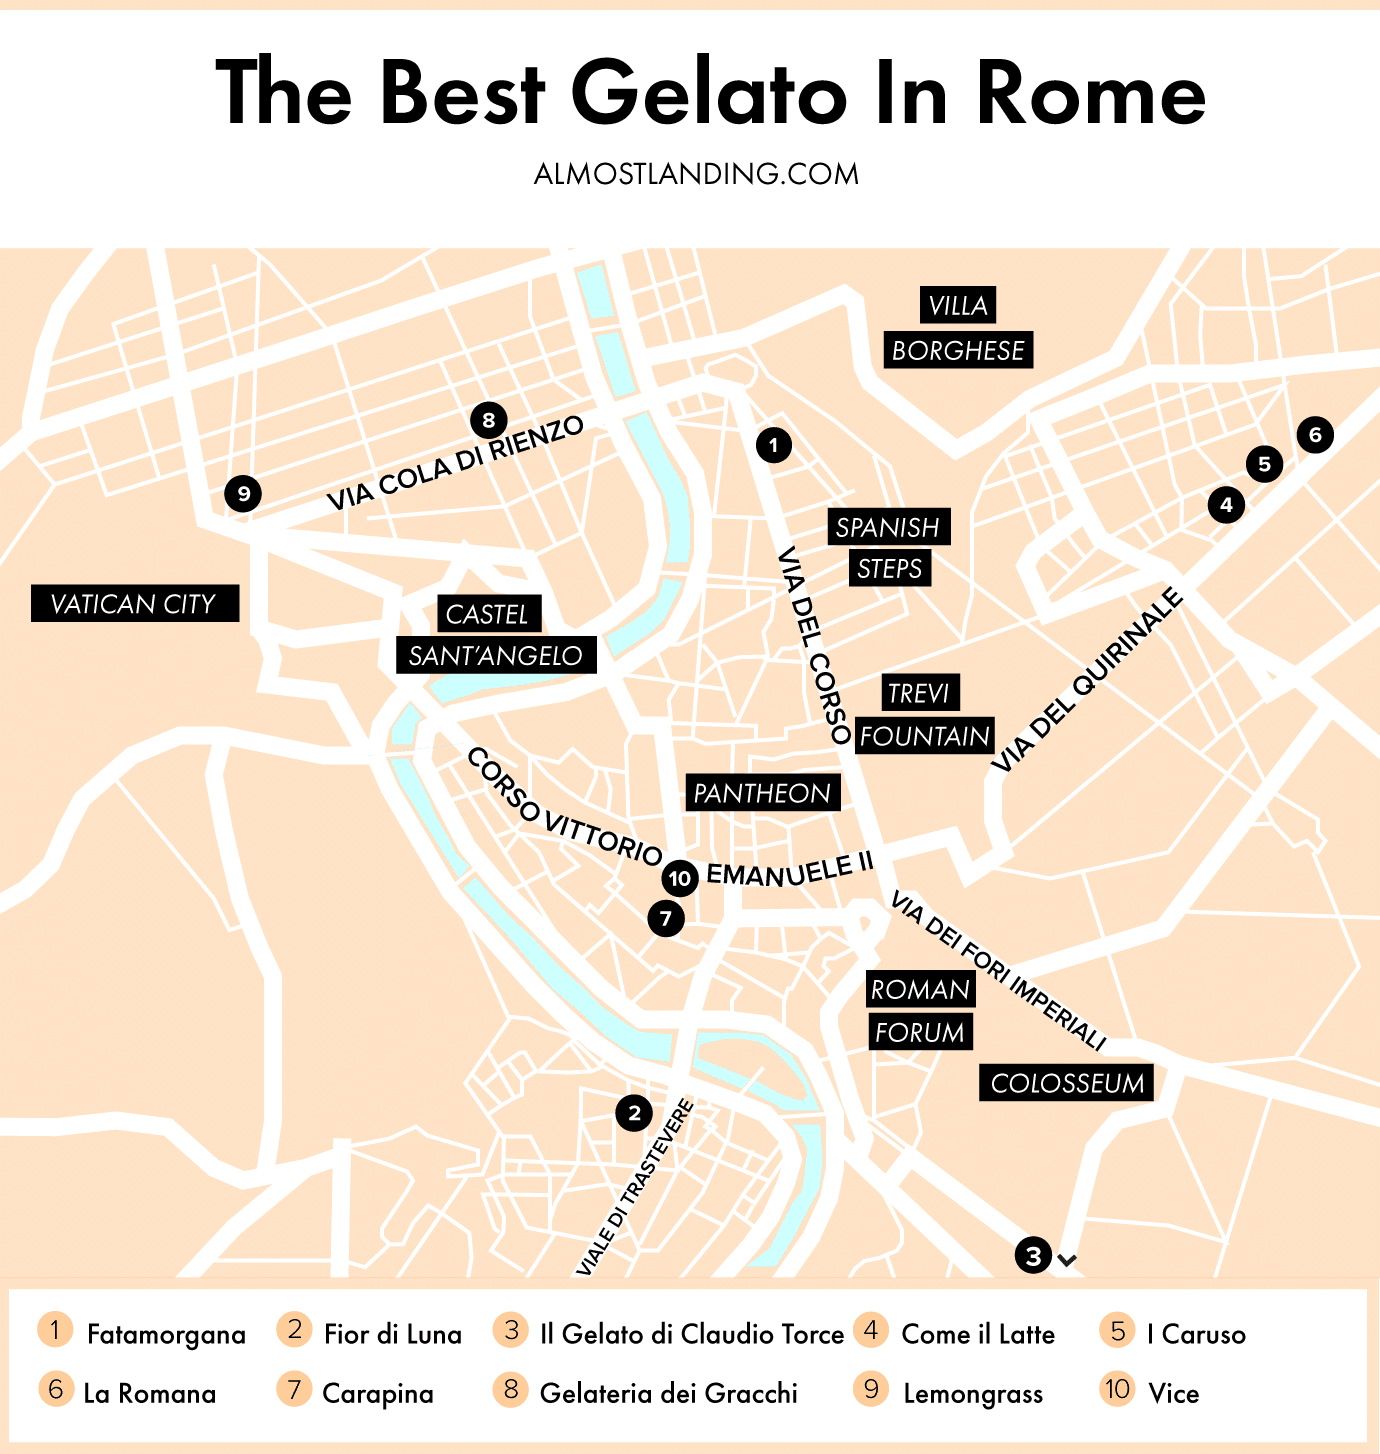 The Best Gelato In Rome Map